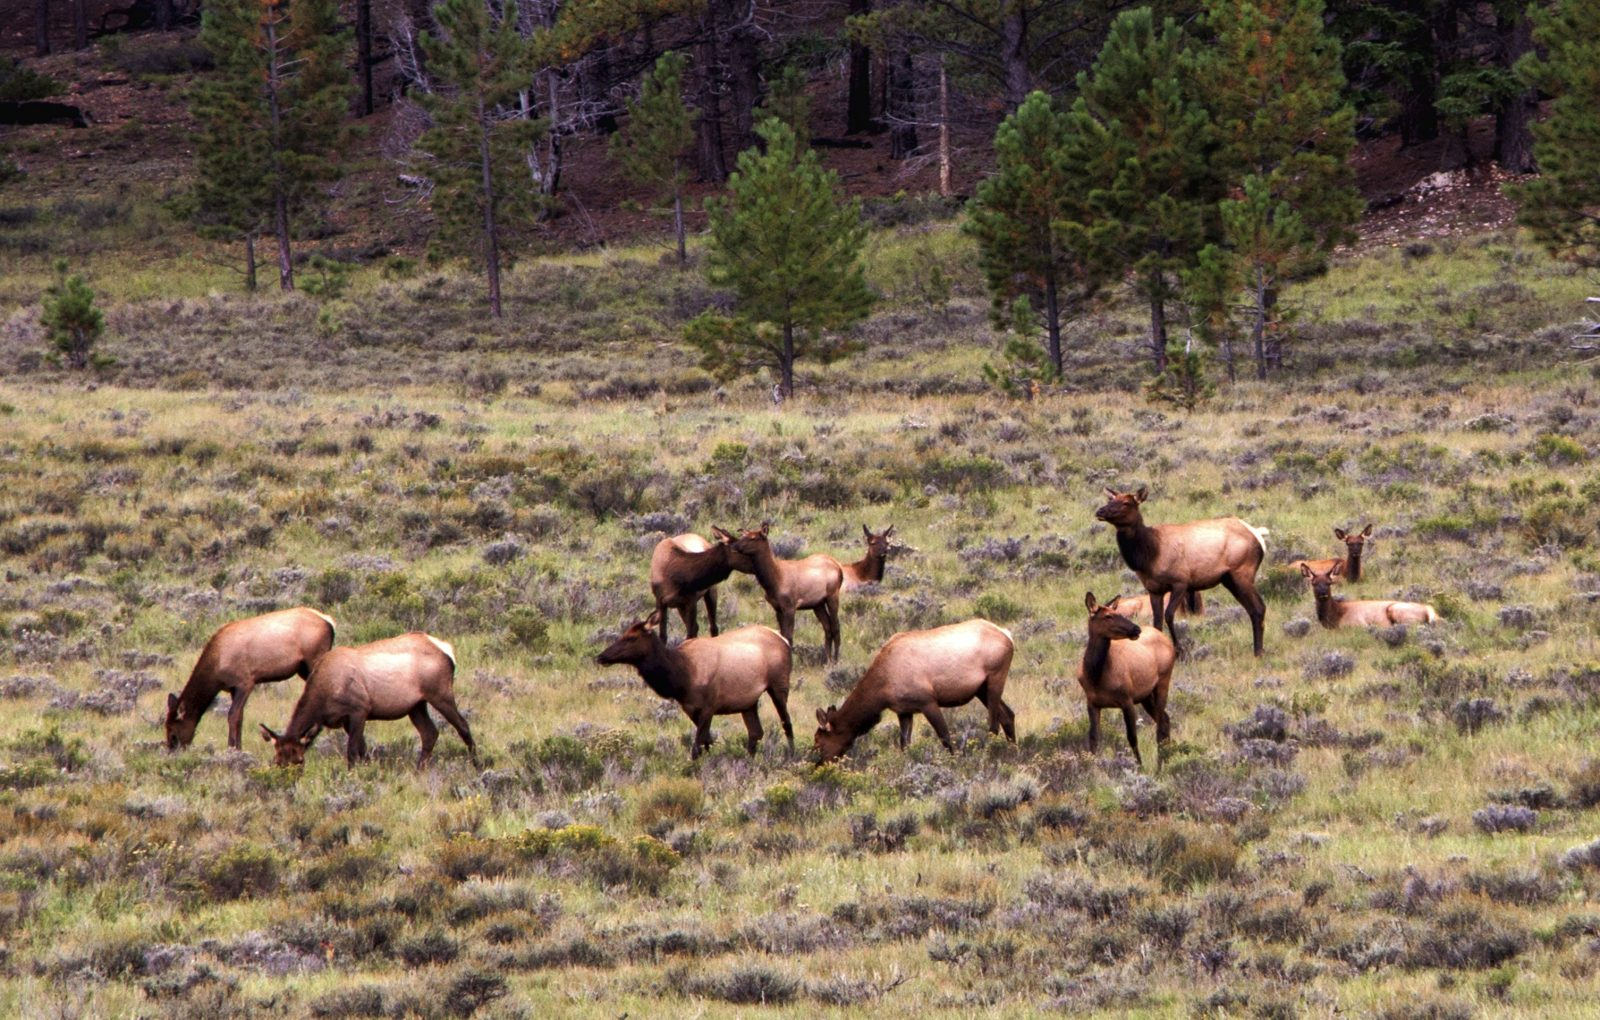 Grazing at Bryce Canyon